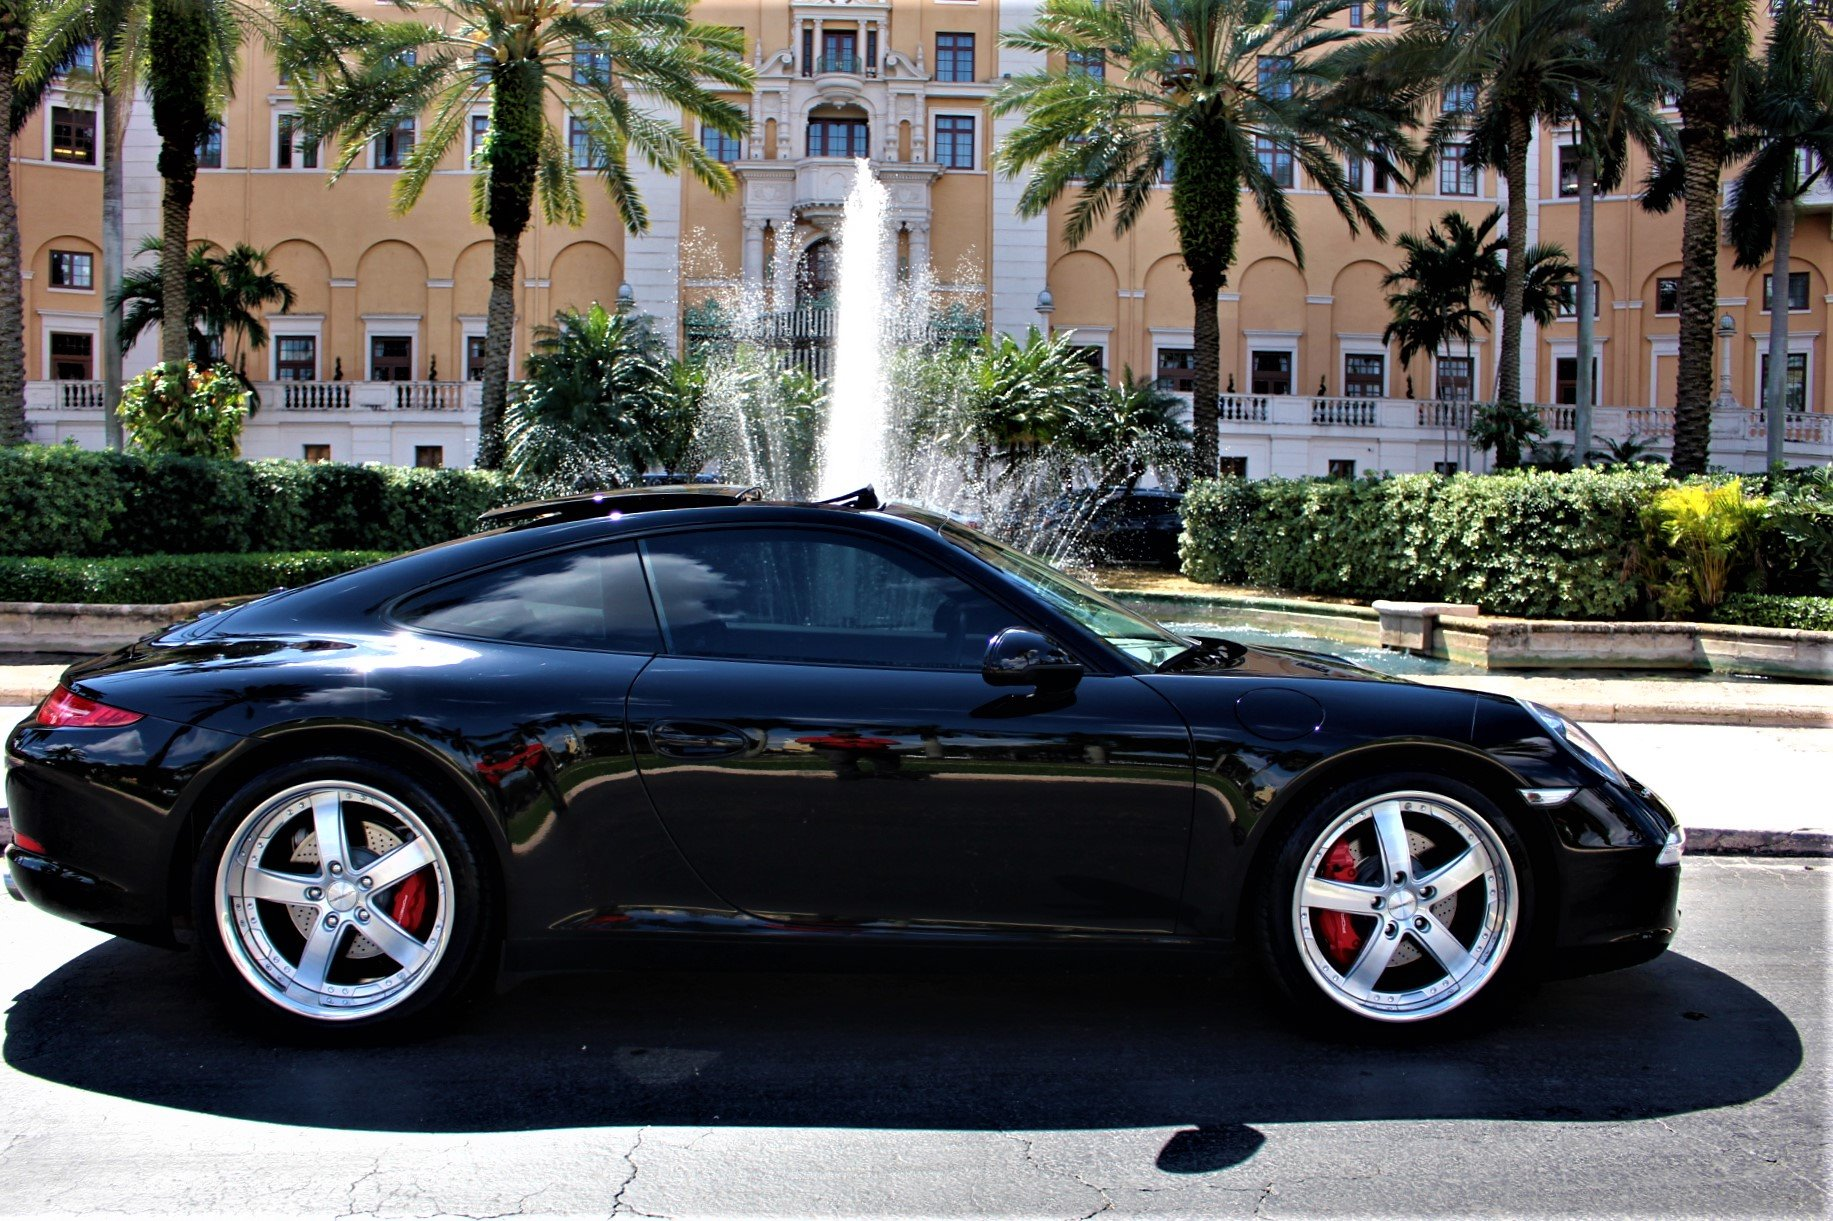 Used 2012 Porsche 911 Carrera S for sale Sold at The Gables Sports Cars in Miami FL 33146 2